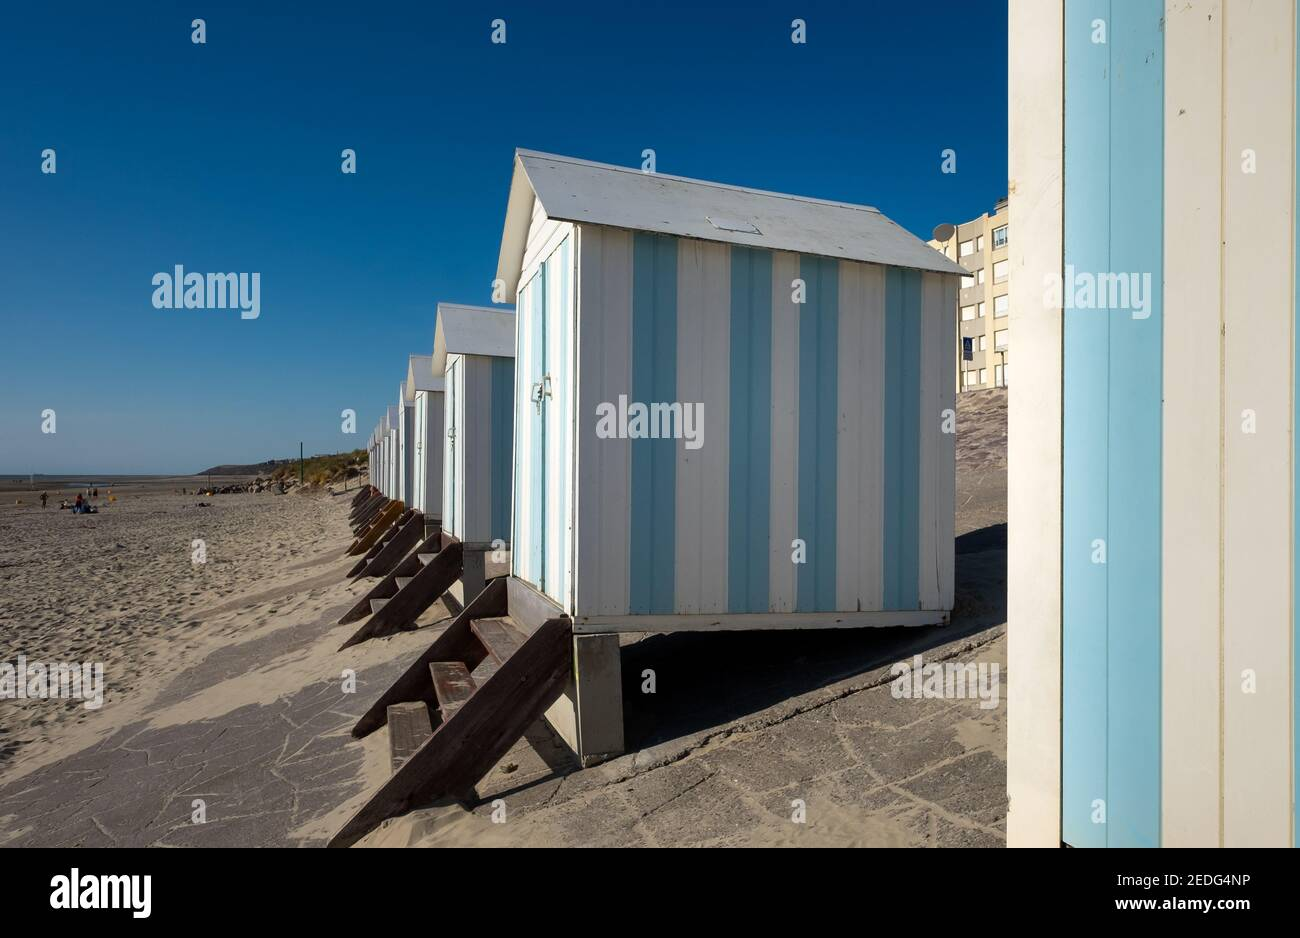 Striped beach cabins in Hardelot, France. Stock Photo